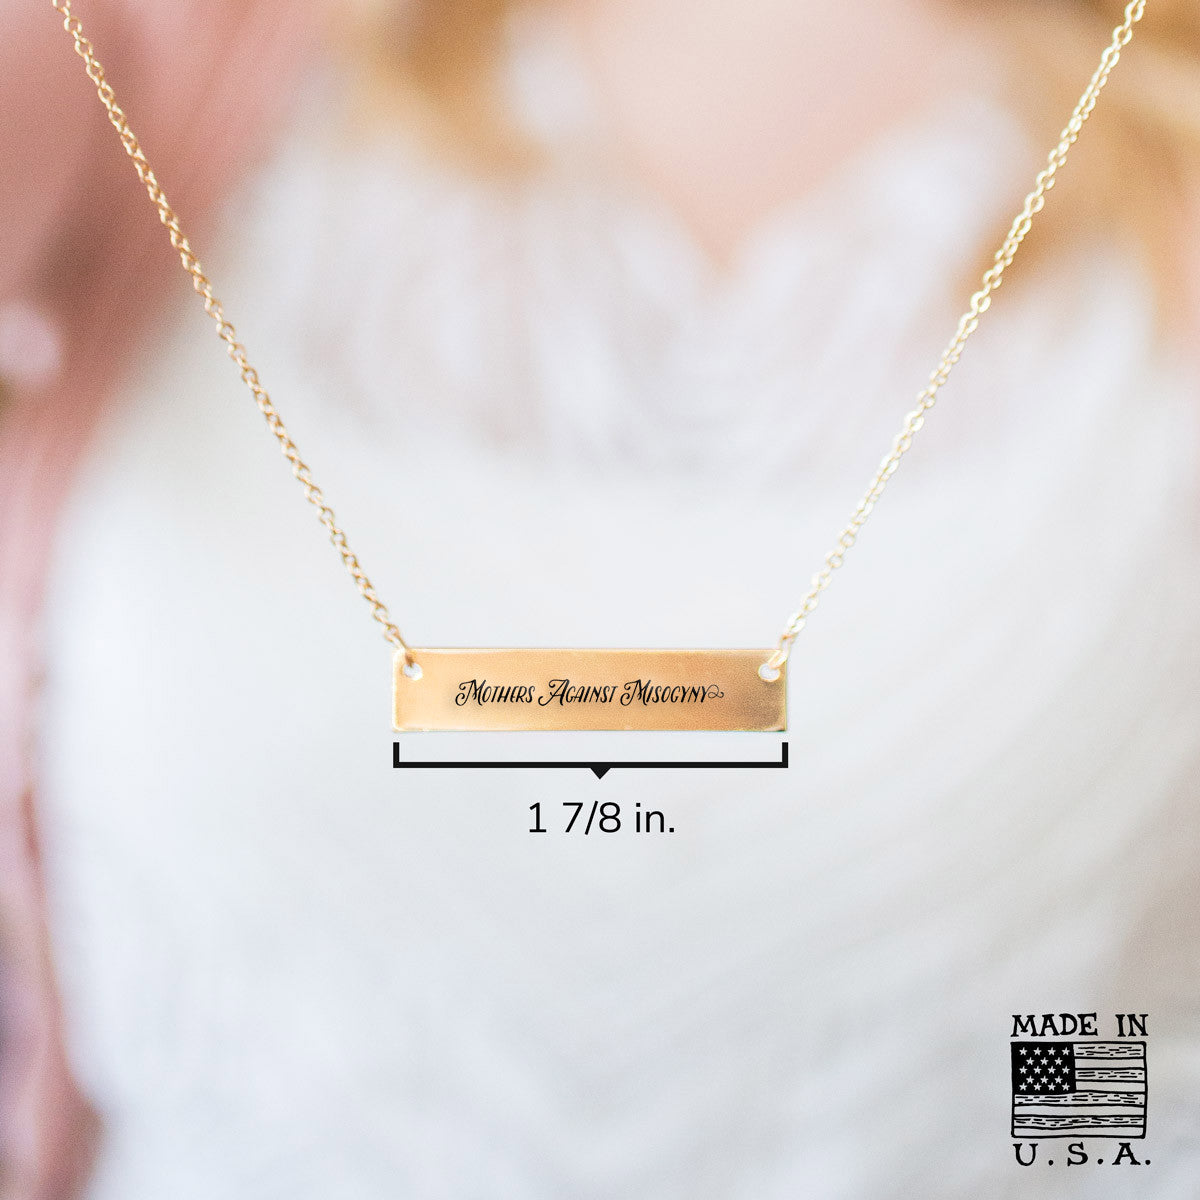 Mothers Against Misogyny Gold / Silver Bar Necklace - pipercleo.com